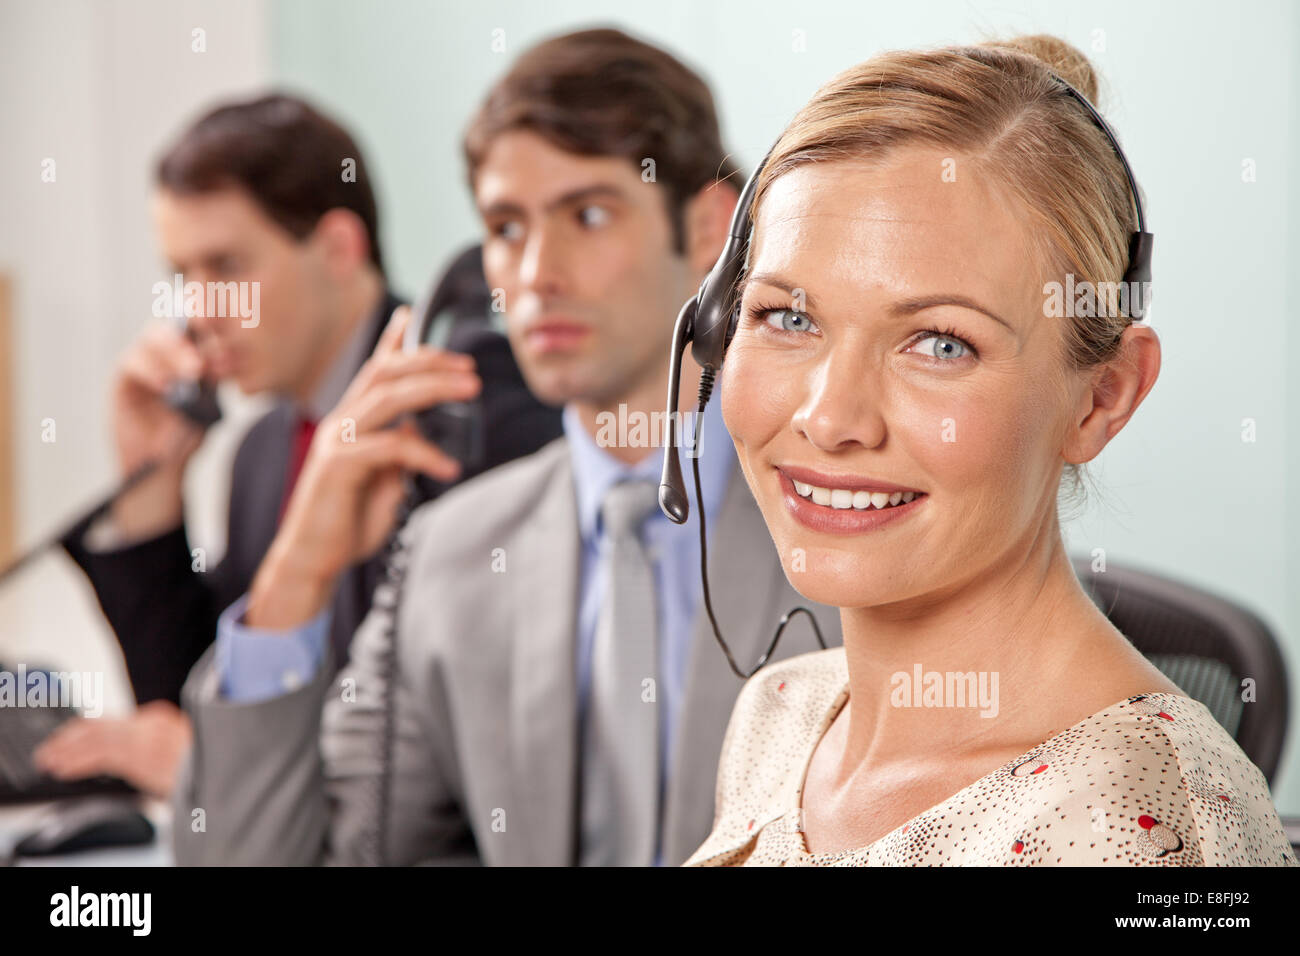 Young woman with phone headset in office with coworkers in background - Stock Image